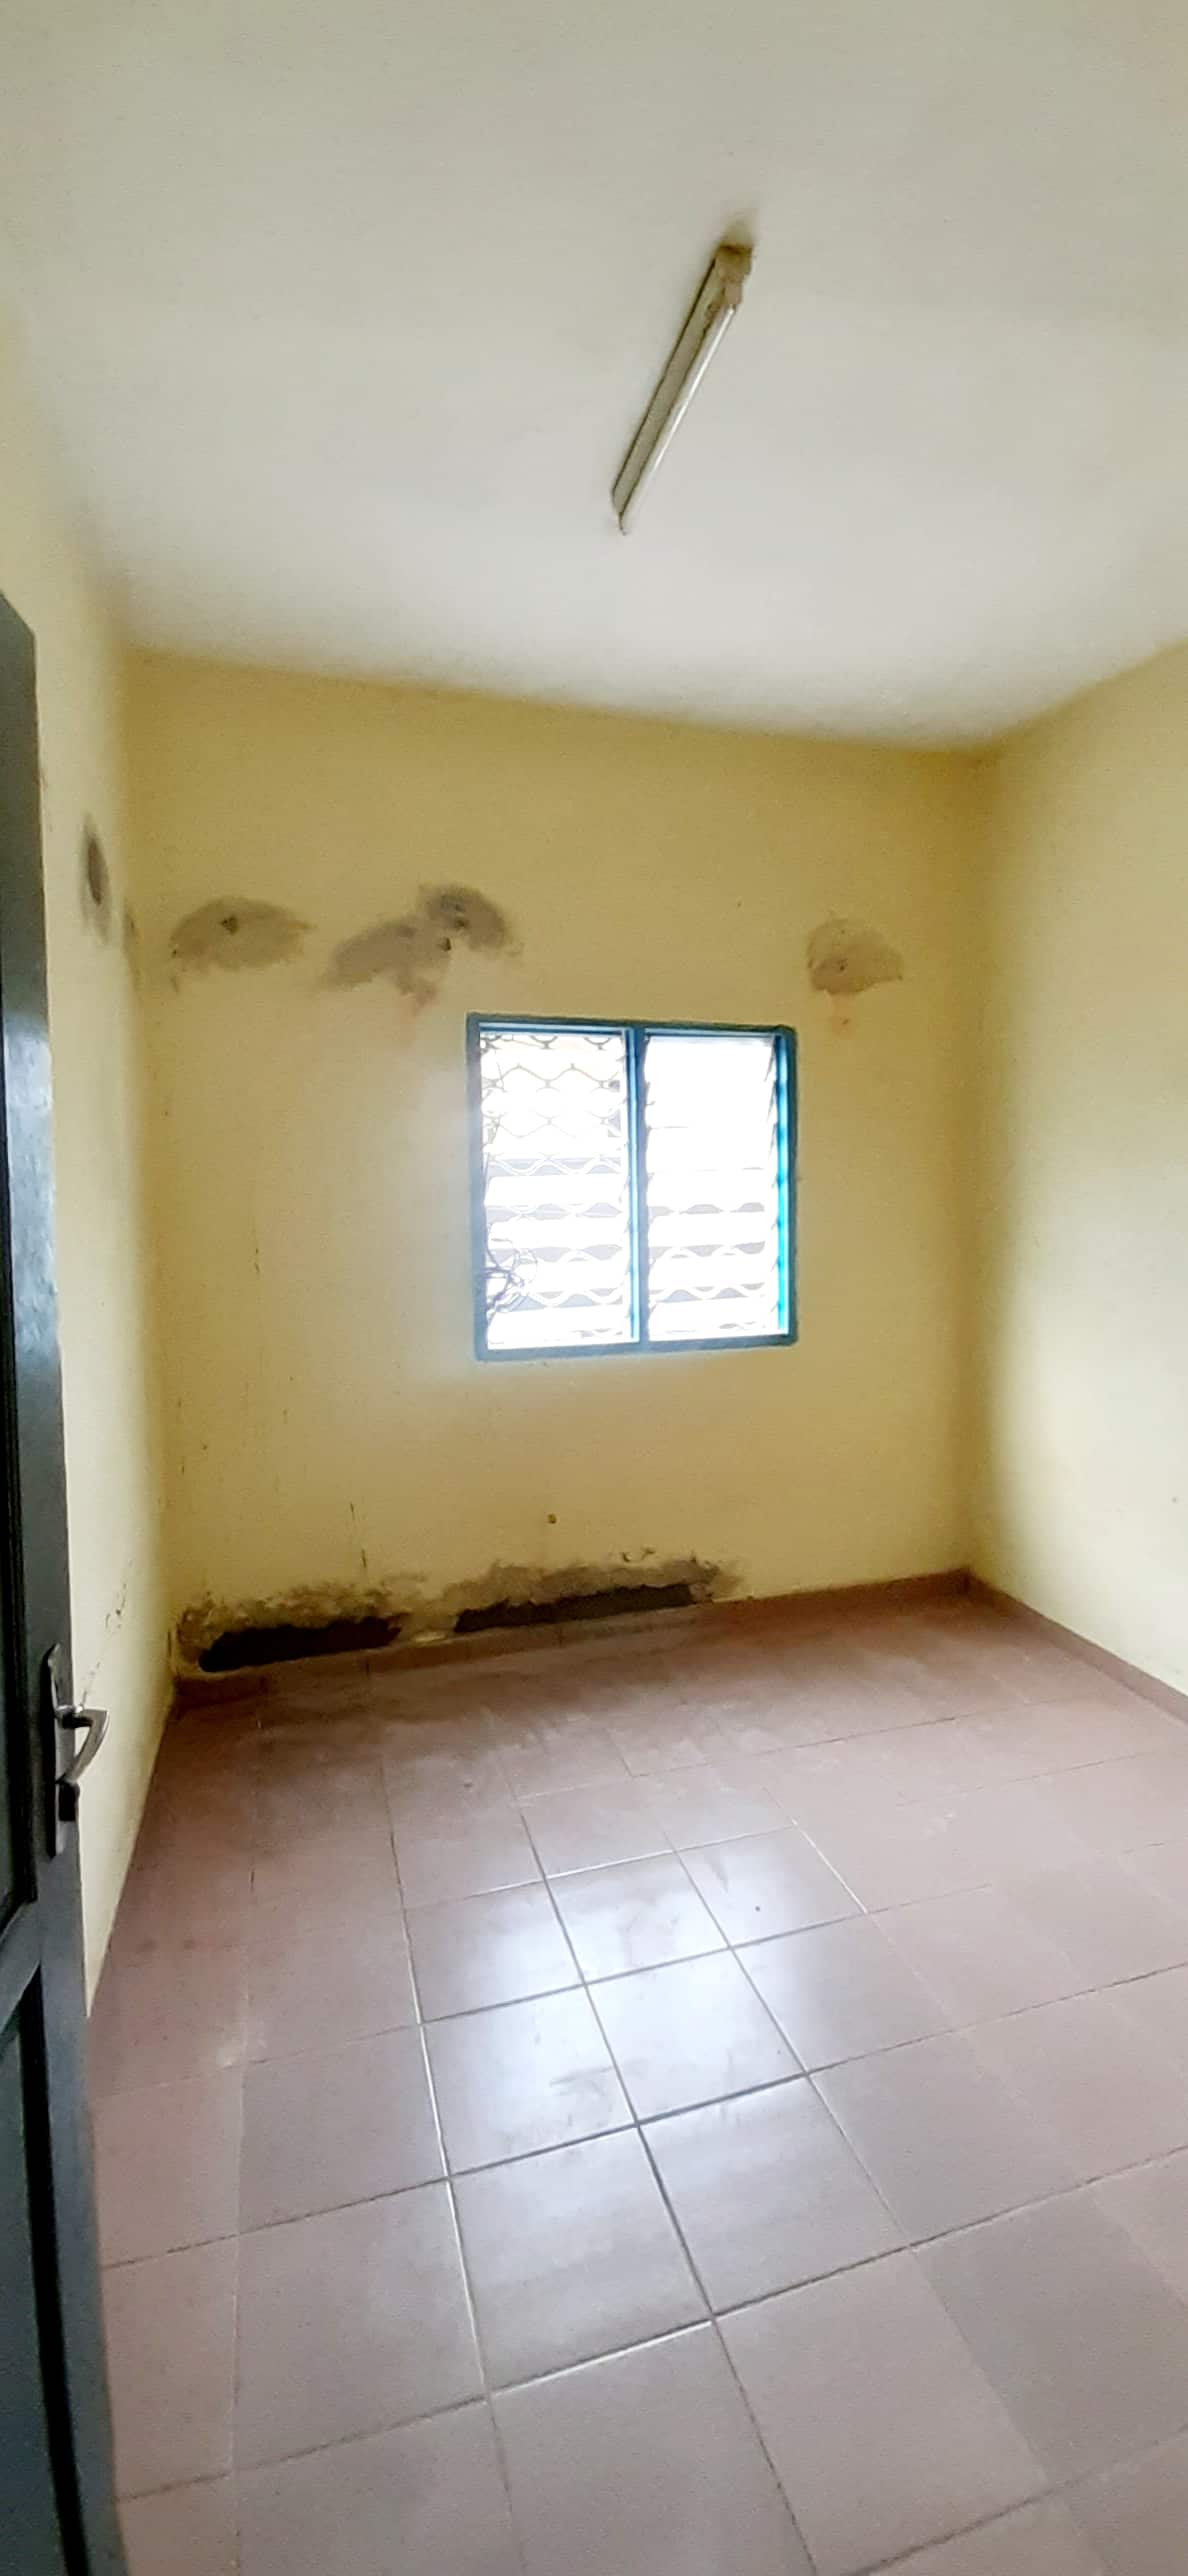 Apartment to rent - Douala, Kotto, Kotto Chefferie - 1 living room(s), 2 bedroom(s), 1 bathroom(s) - 70 000 FCFA / month